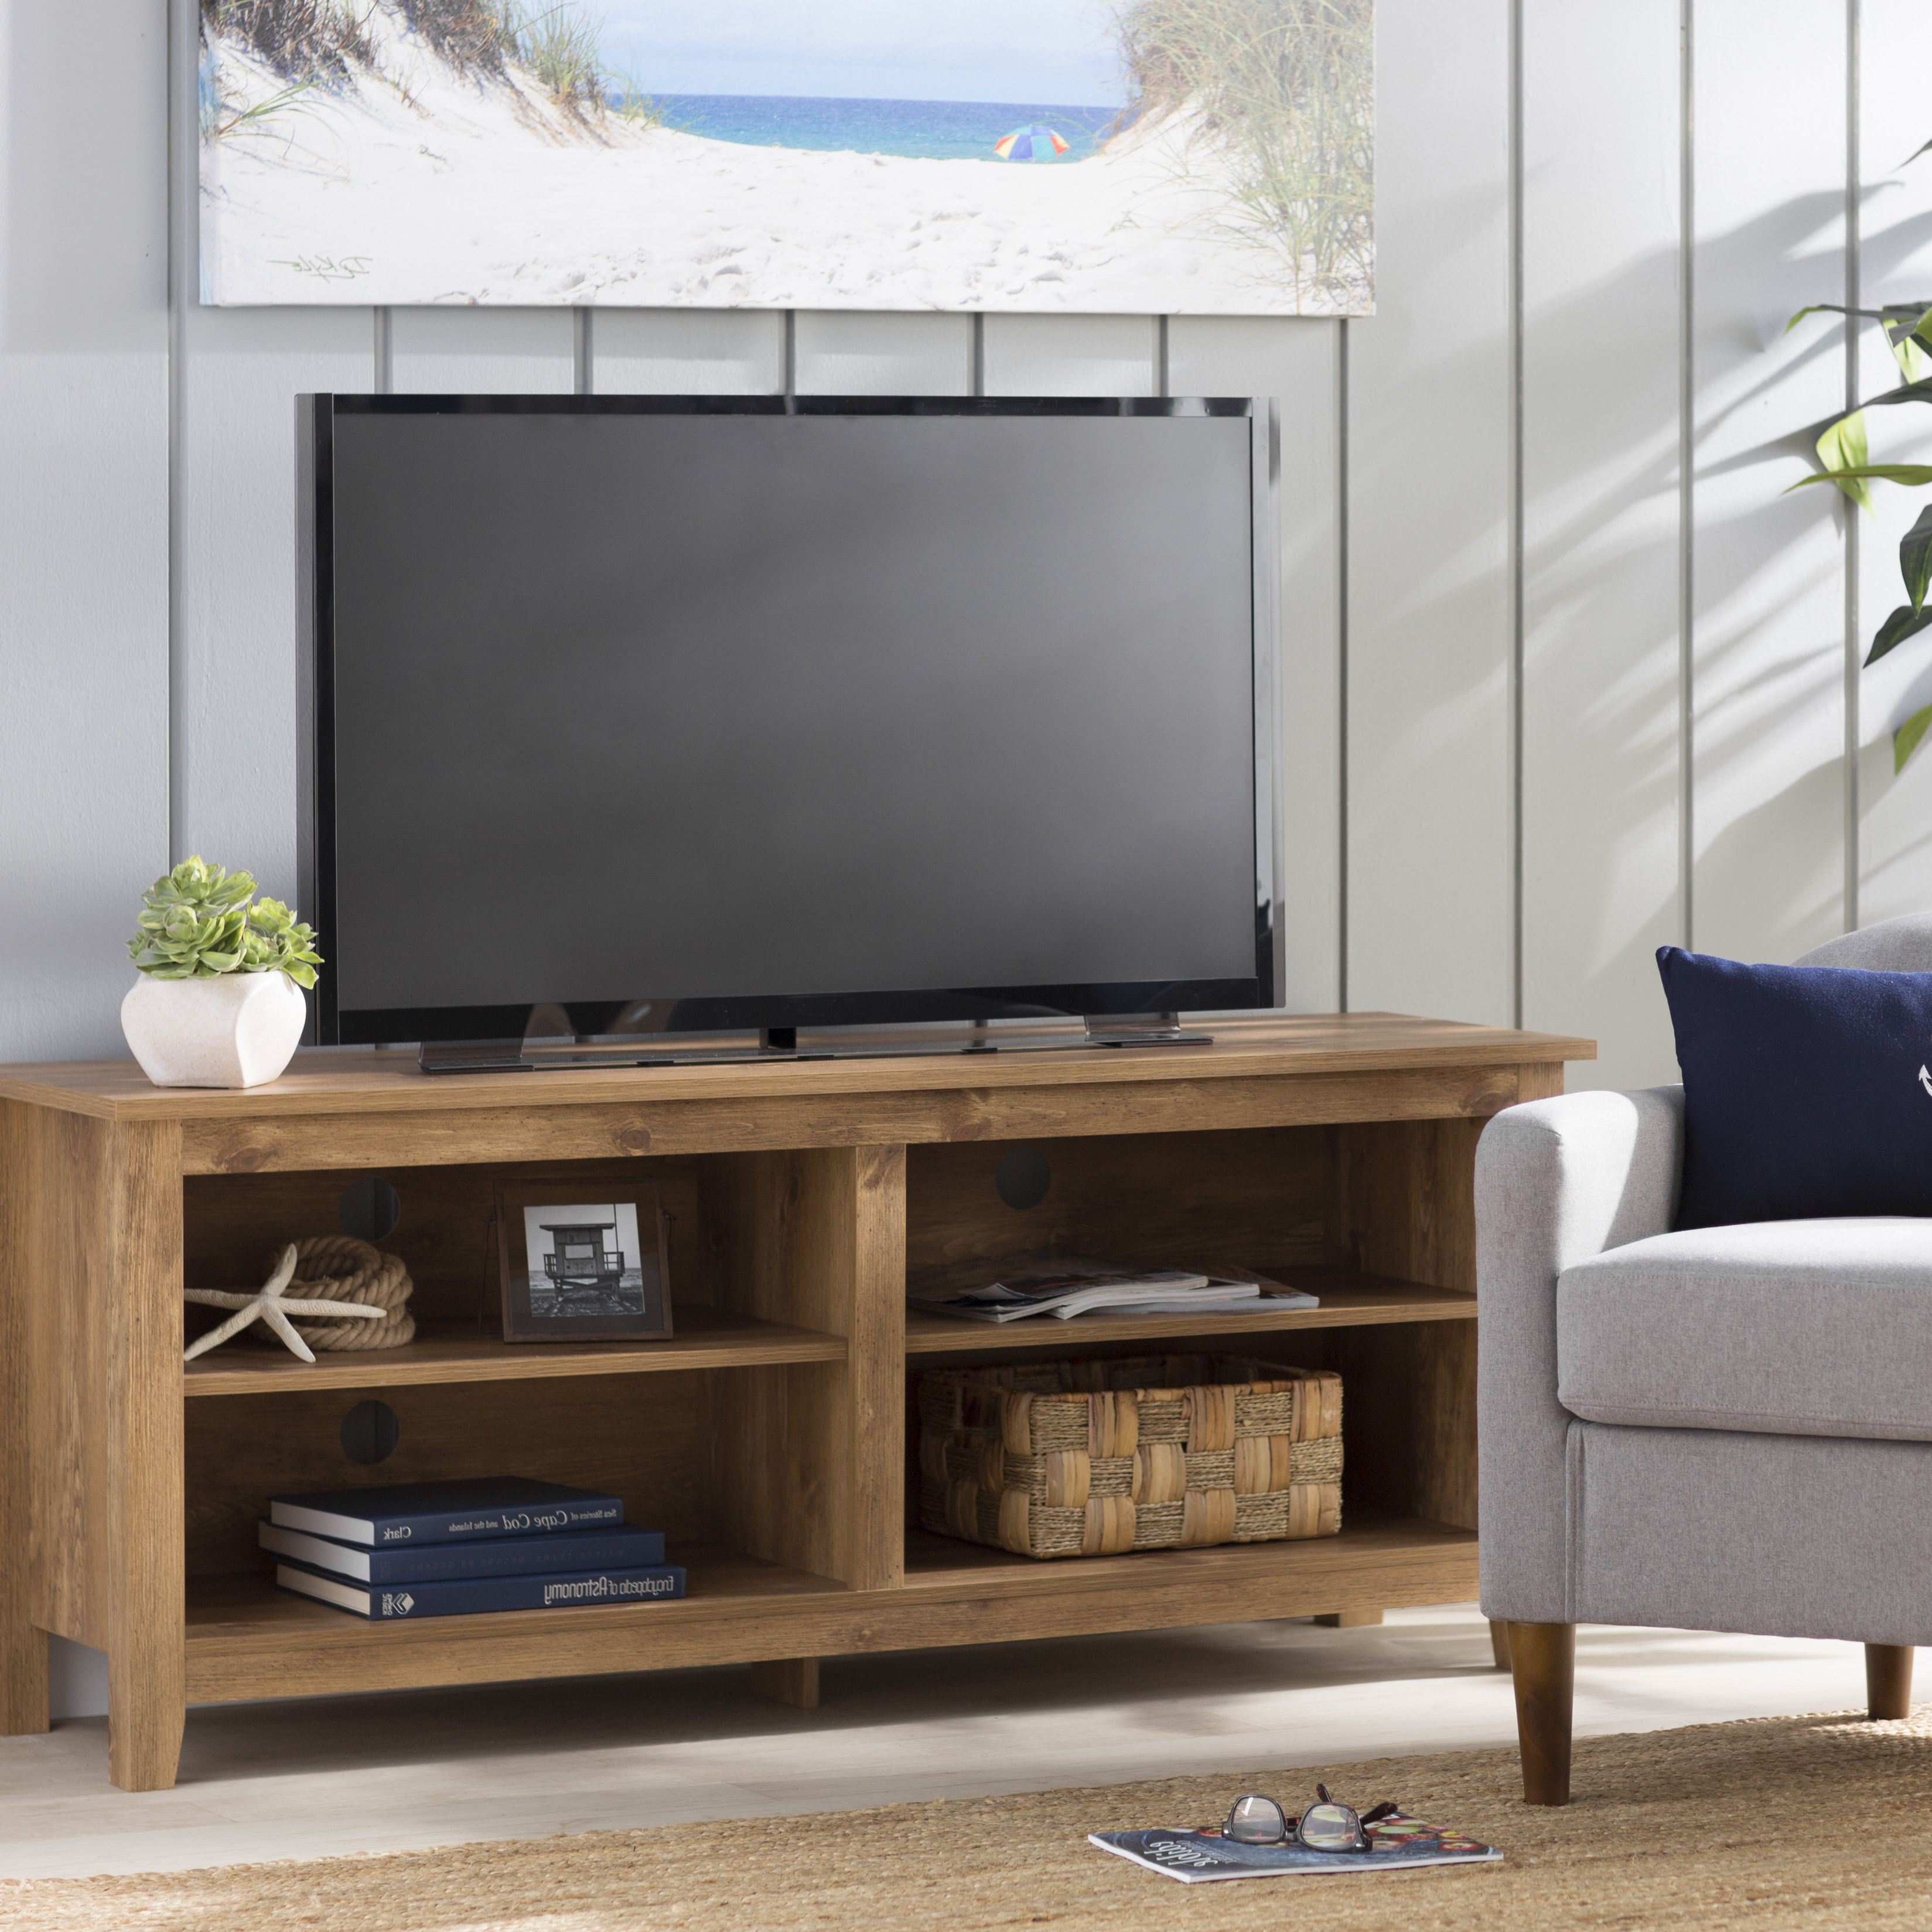 Tv Stand For 75 Inch Tv | Wayfair In Laurent 60 Inch Tv Stands (View 6 of 20)